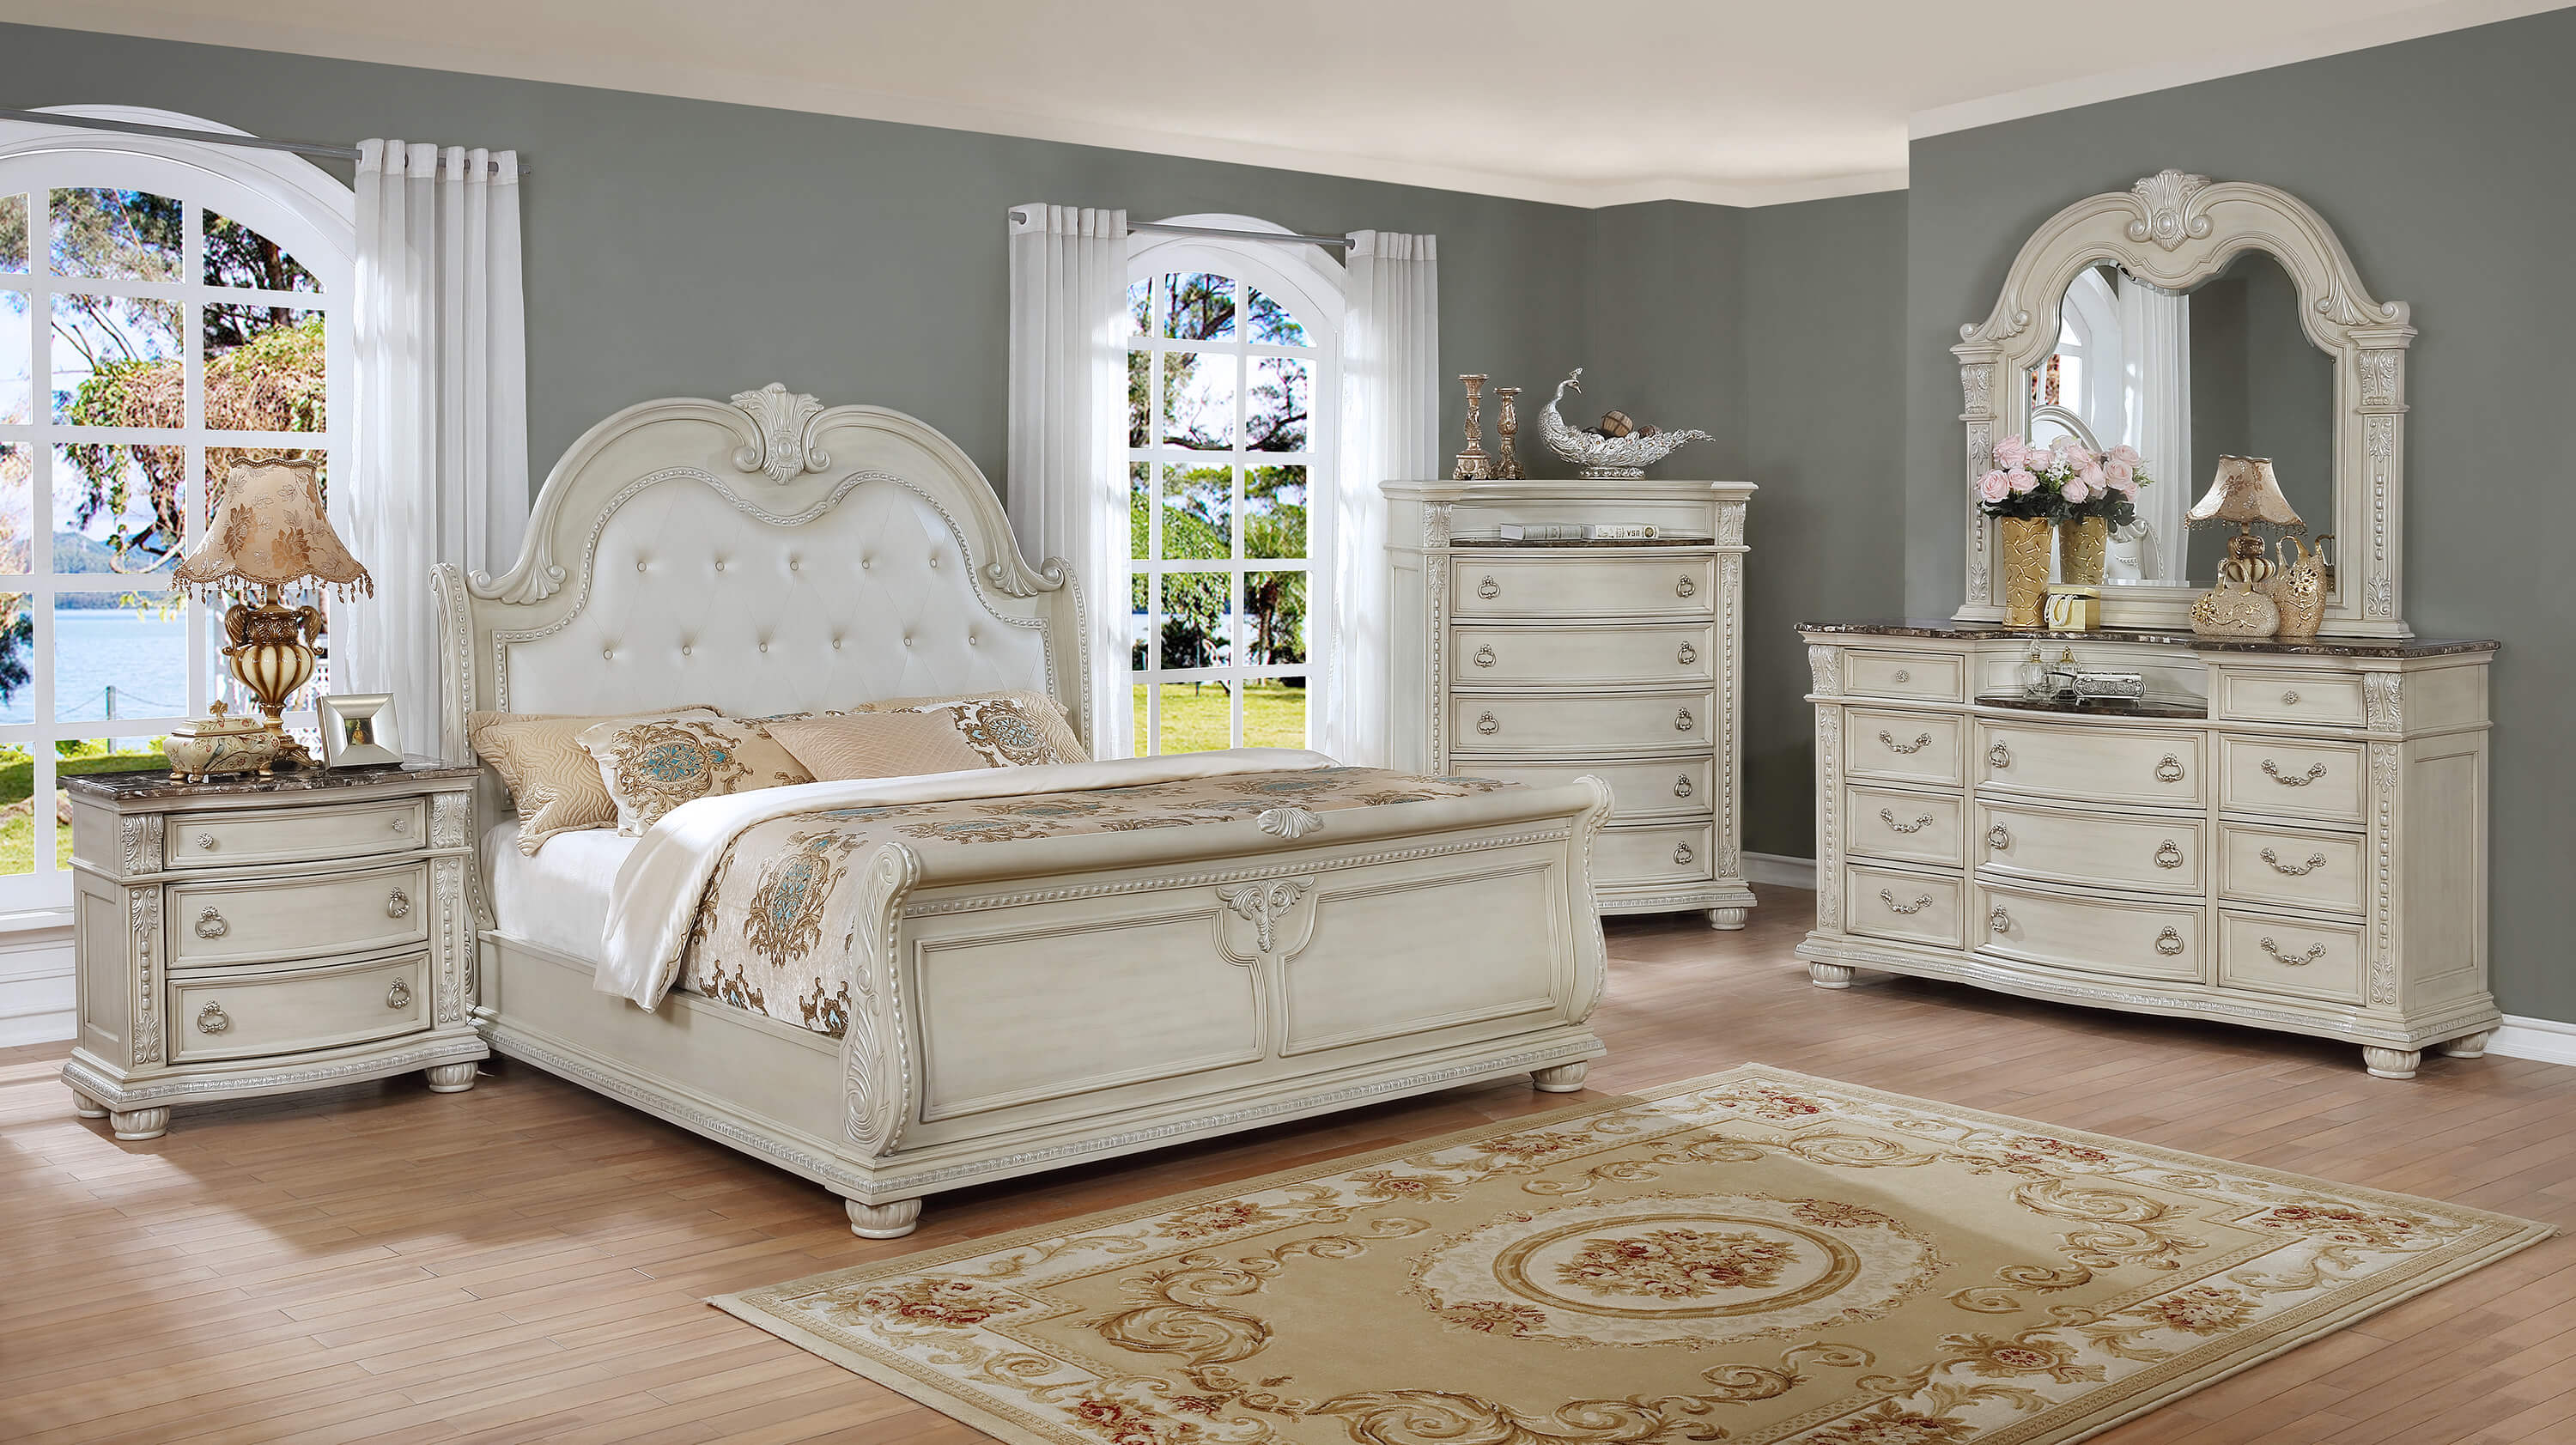 Stanley Antique White Marble Bedroom Set | Bedroom Furniture Sets